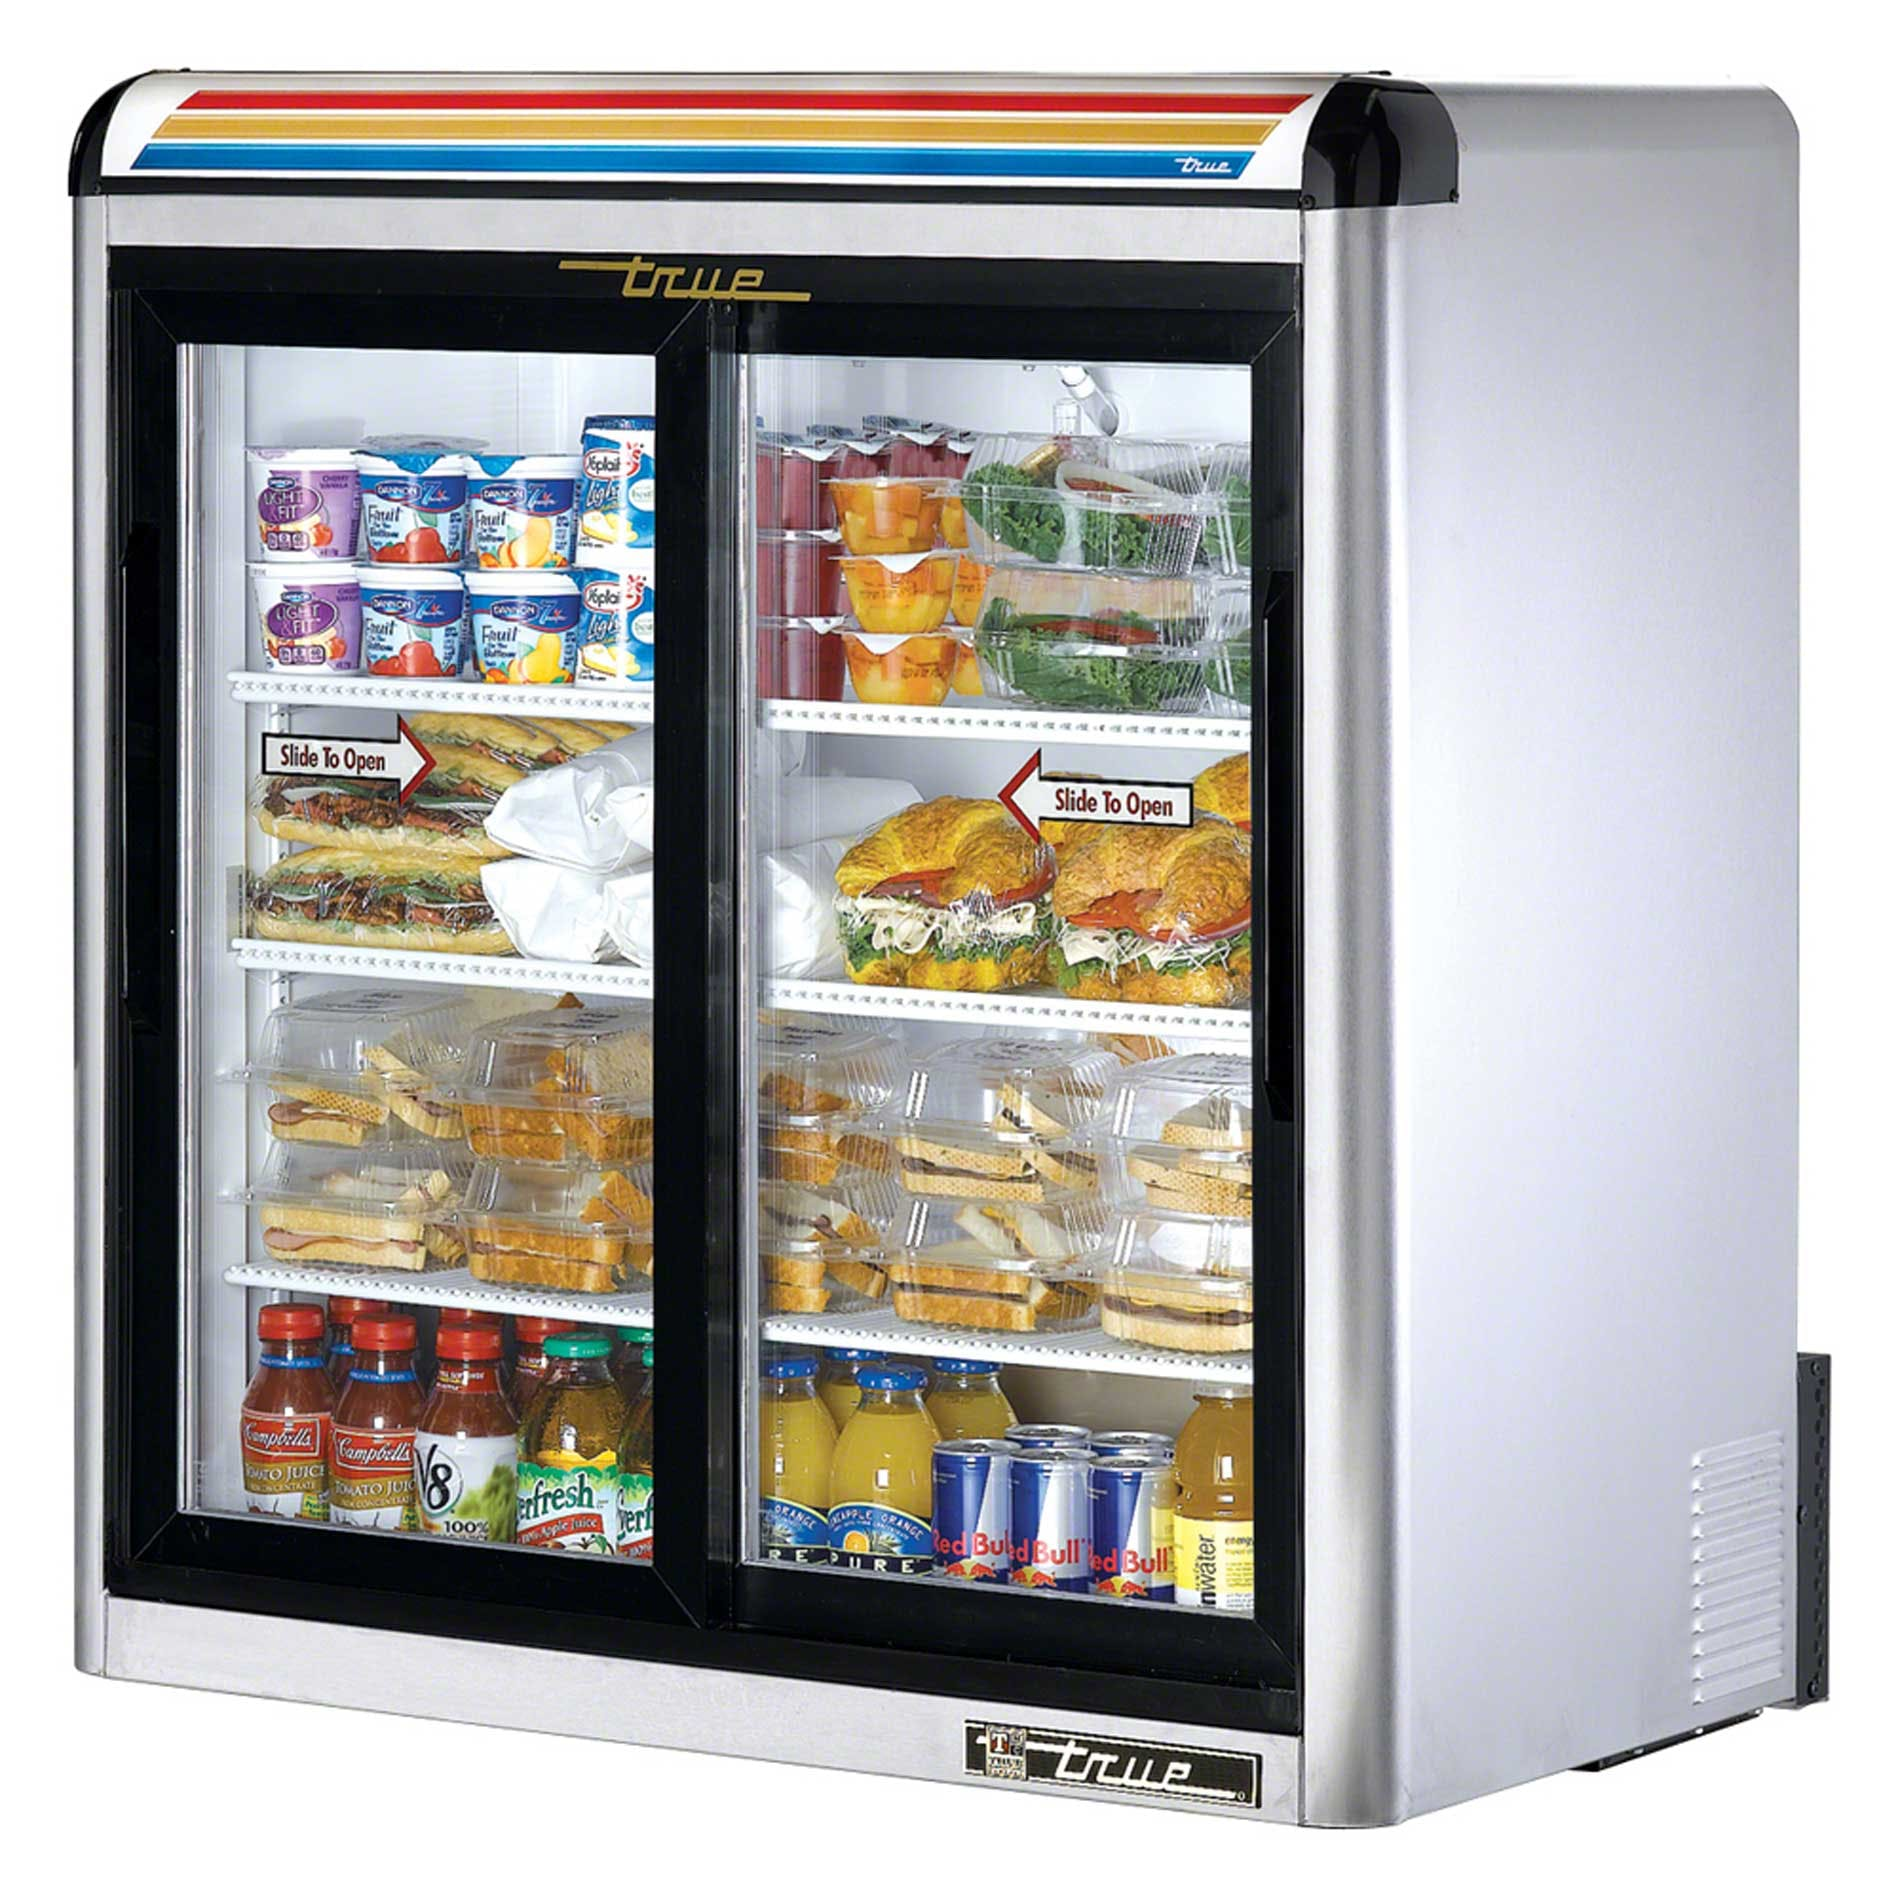 "True - GDM-9-S-LD 37"" Countertop Glass Door Merchandiser Refrigerator LED Commercial refrigerator sold by Food Service Warehouse"